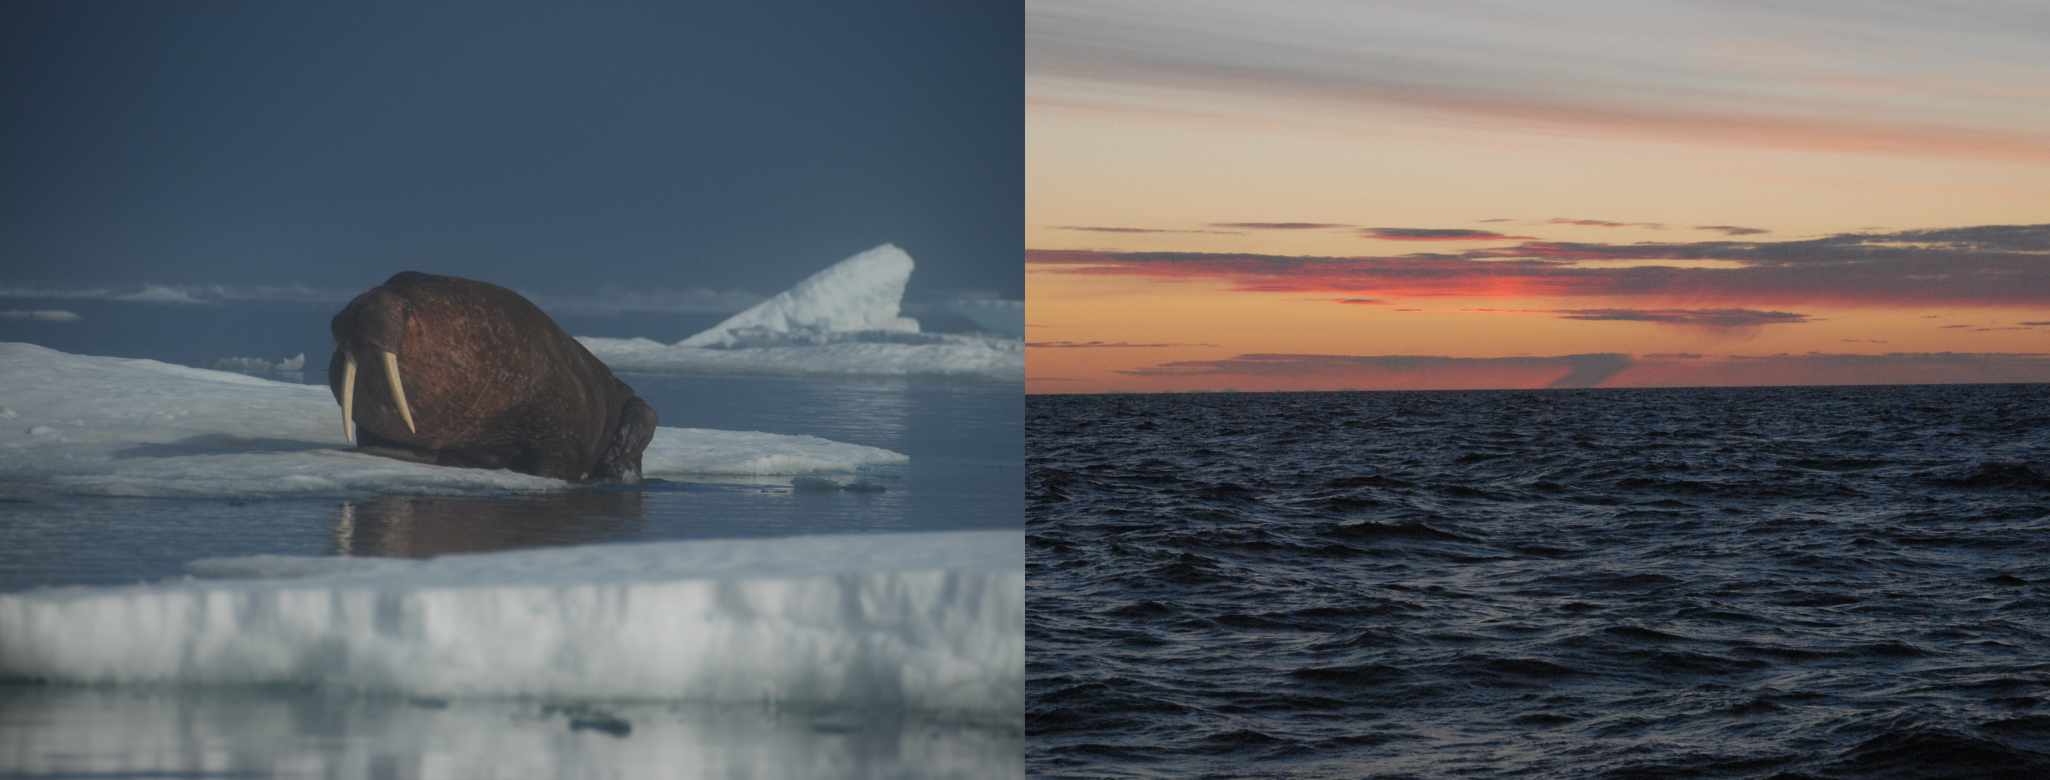 A walrus and arctic sunset